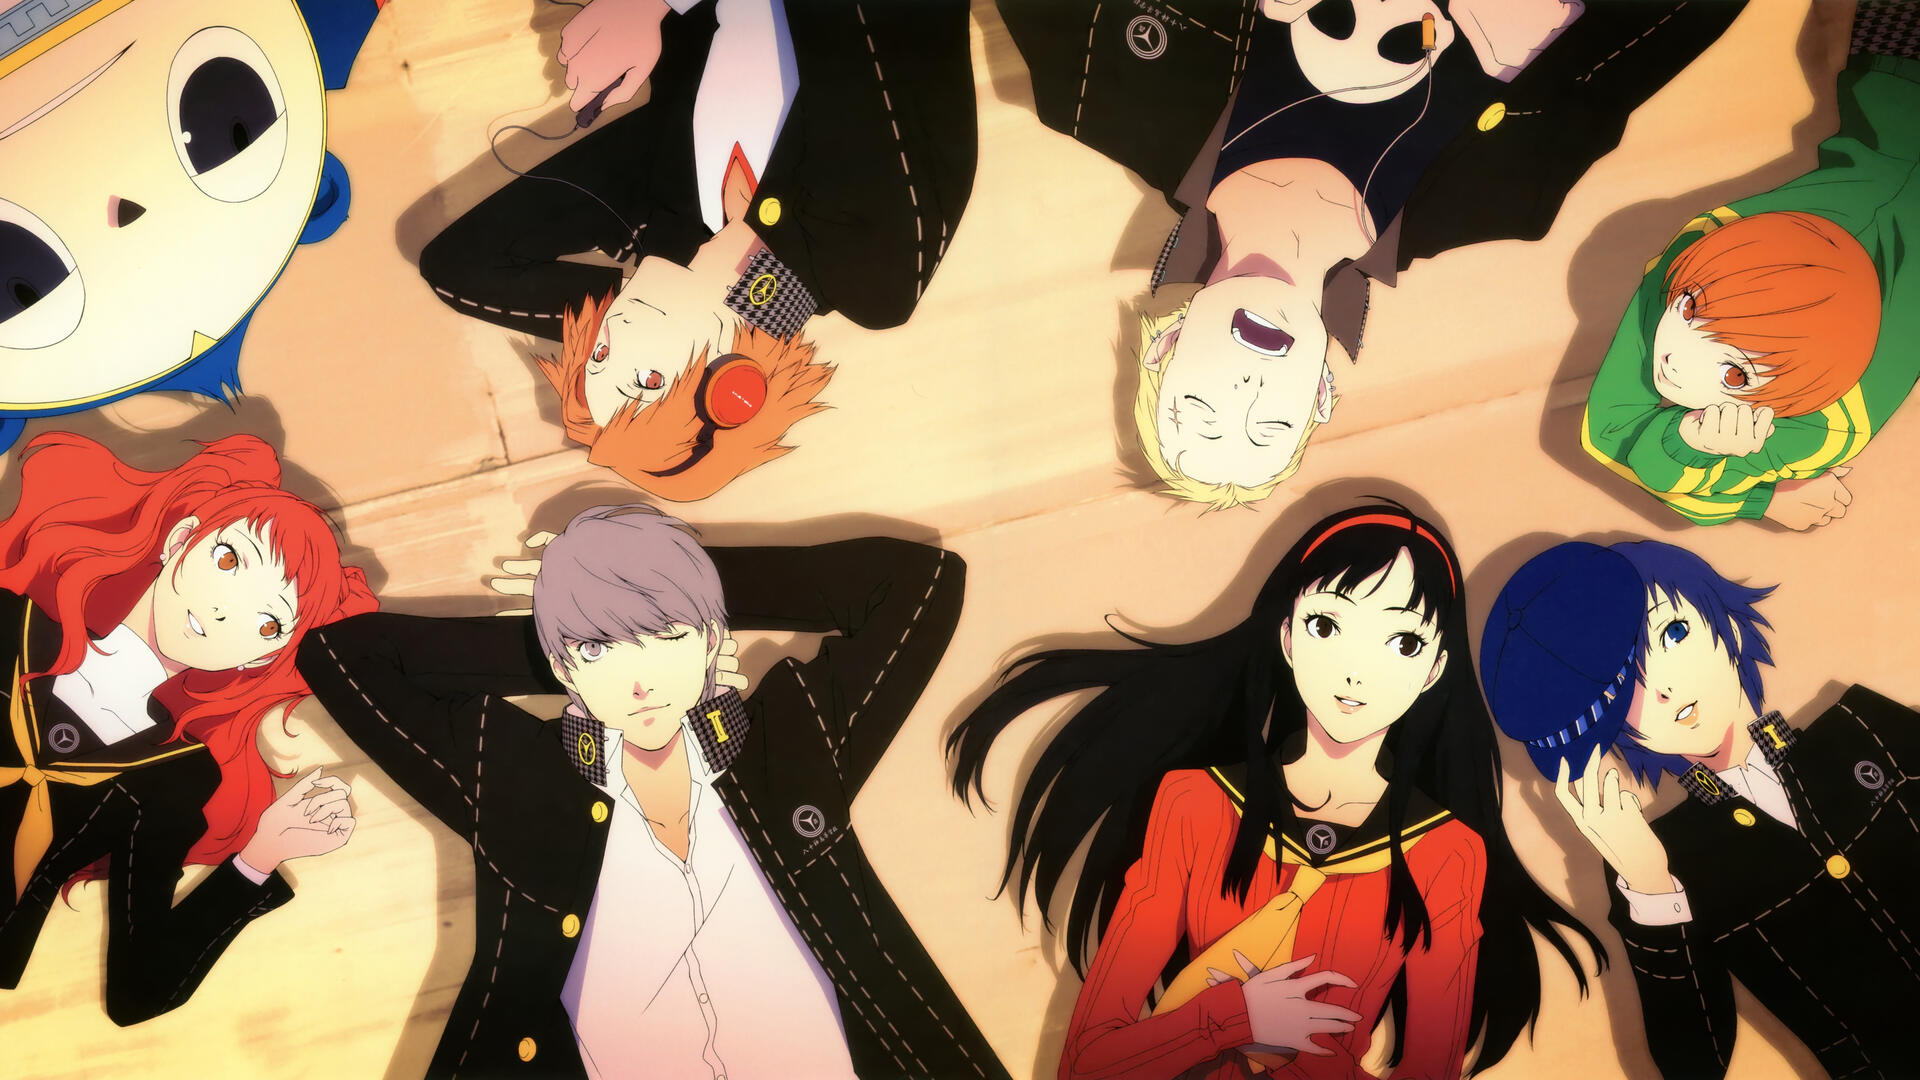 The Top 25 RPGs of All Time #9: Persona 4